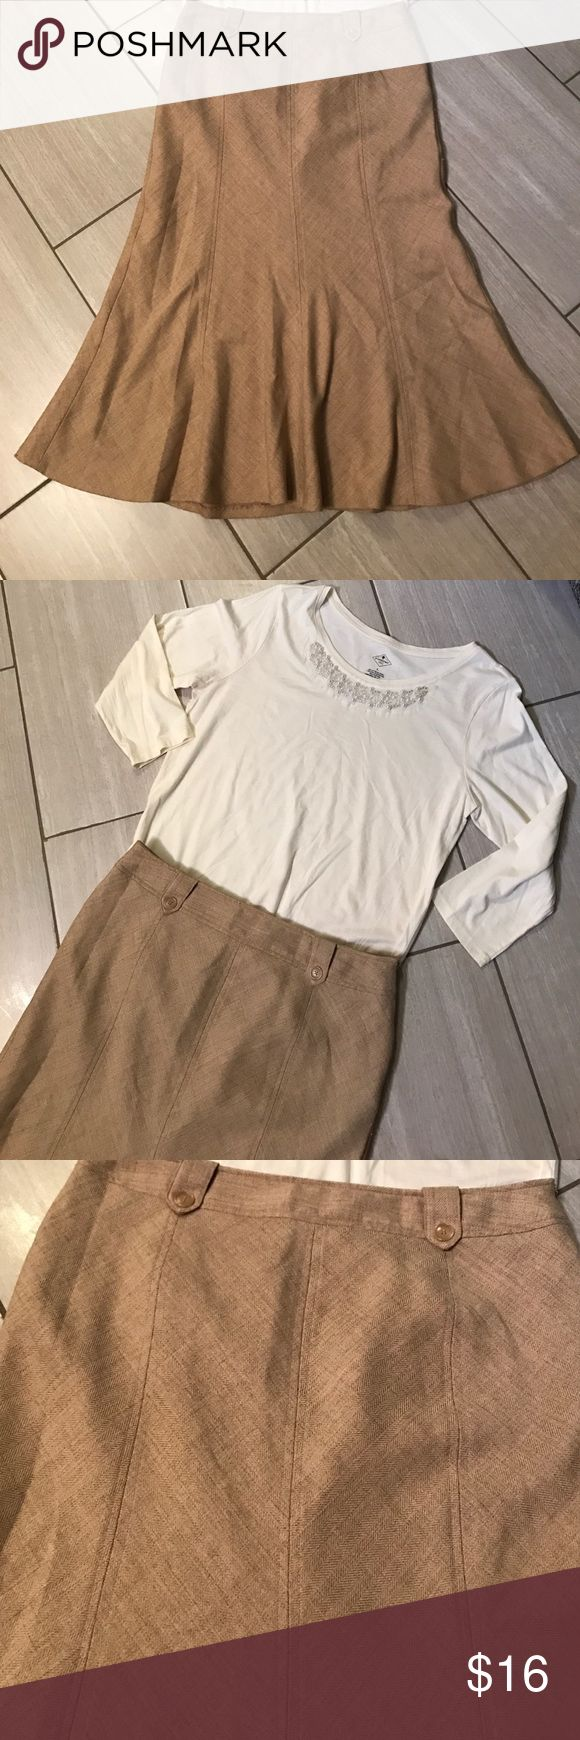 Worthington trumpet style skirt Adorable trumpet style skirt with button detail. The back of the skirt doesn't have pockets it's just for looks. The material is 99% polyester and 1% spandex. From a smoke free home. The top is for sale in another listing. 🤗 Worthington Skirts